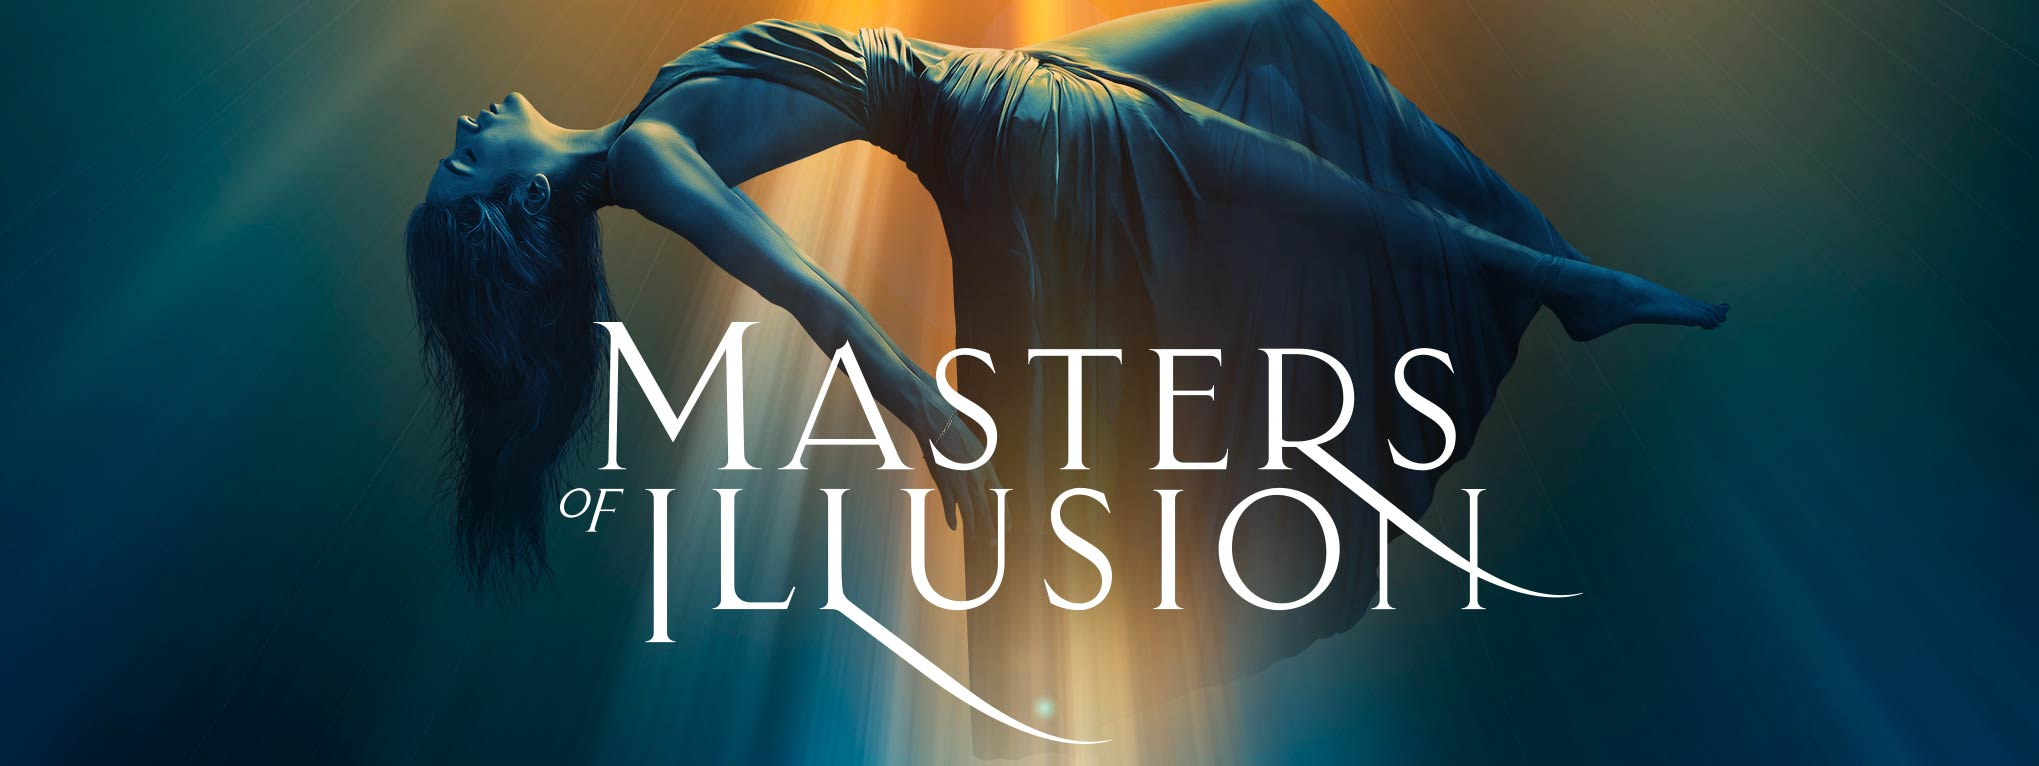 Masters of Illusion Magic Program